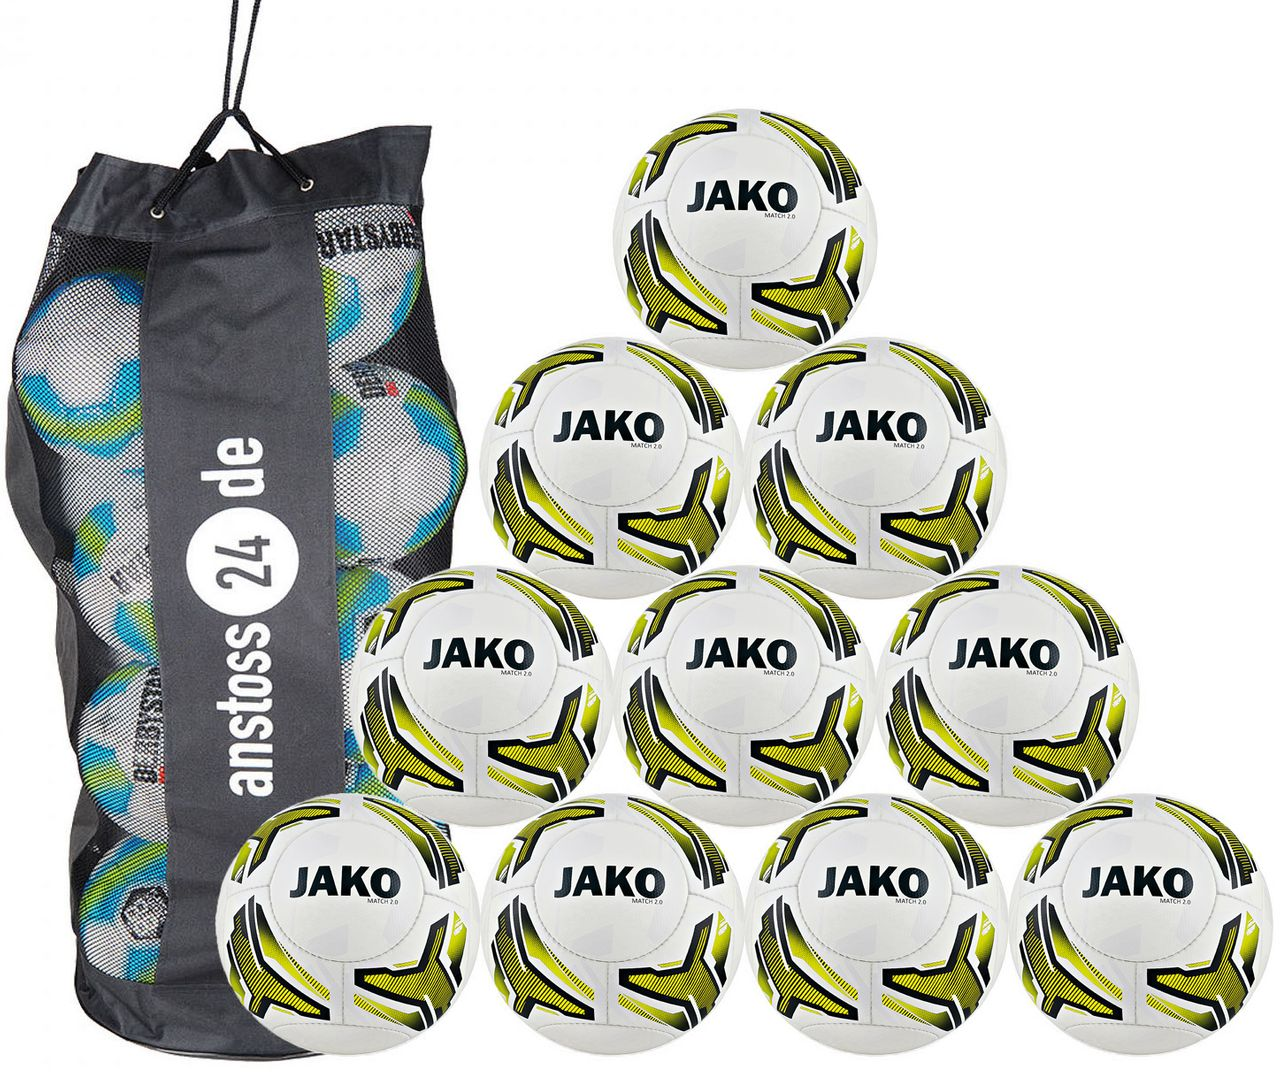 10 x JAKO Youth Ball Match 2.0 incl. ball bag